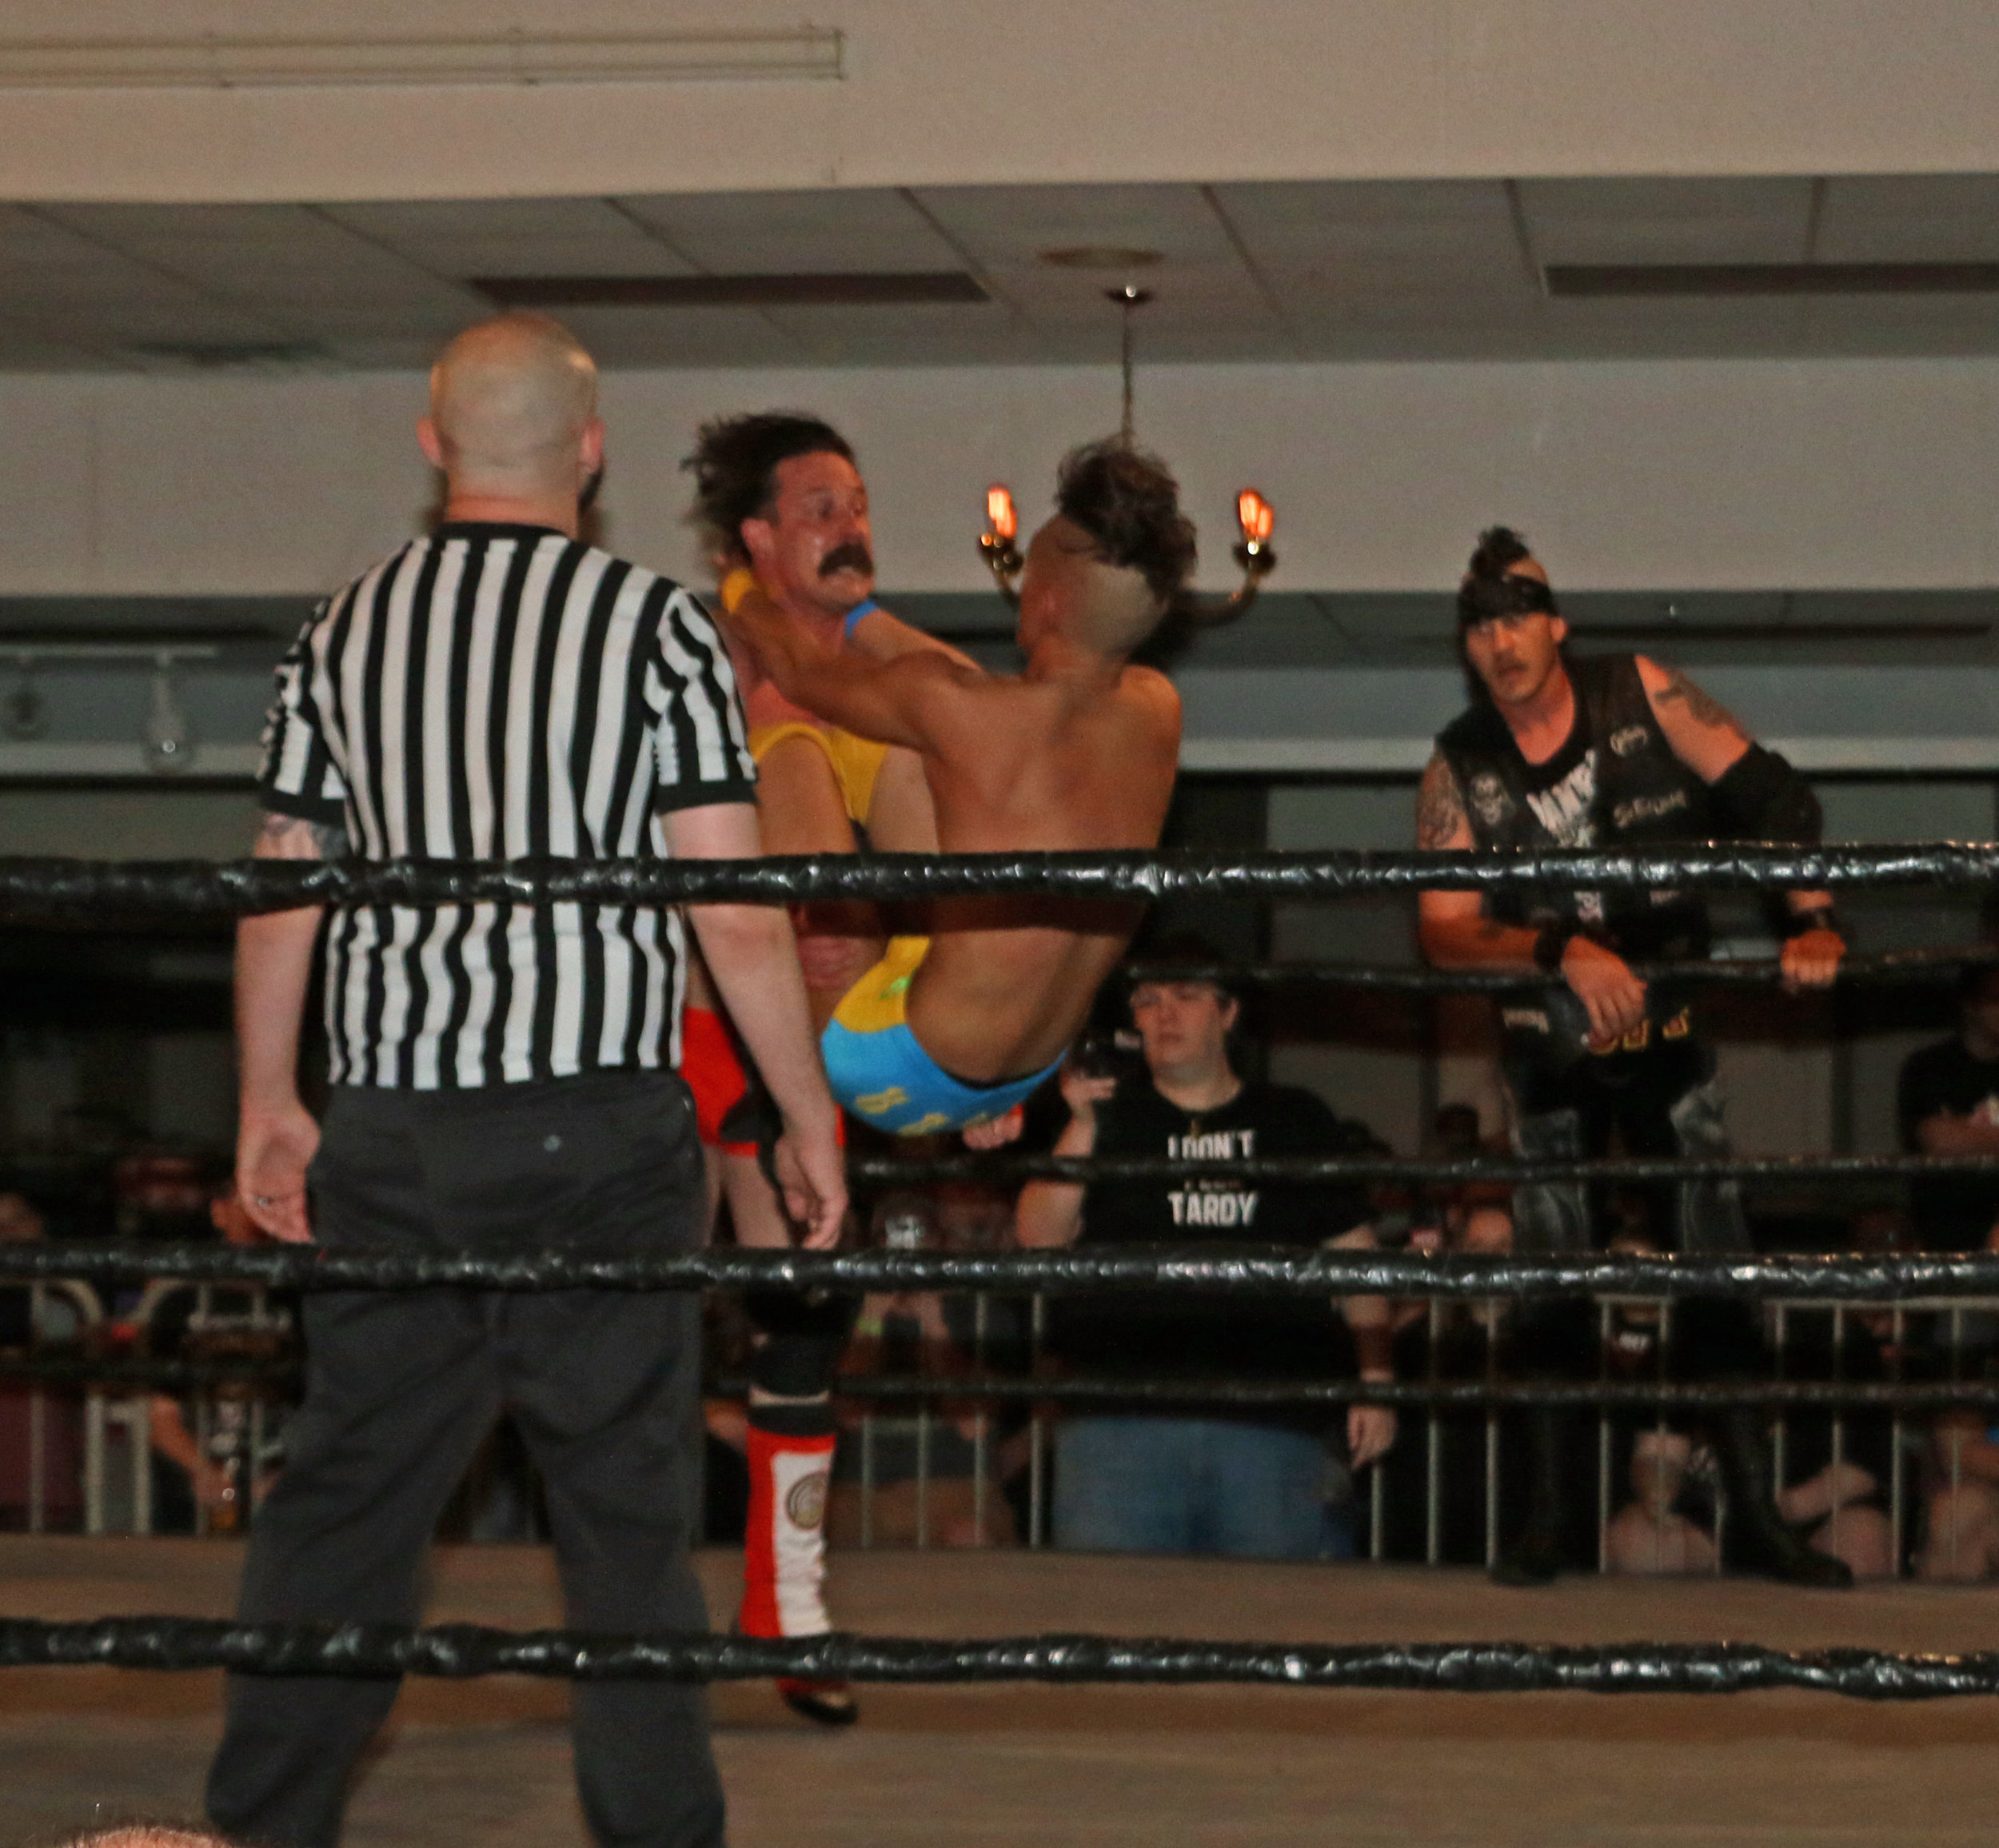 Jordan Kross hits the Codebreaker on Dave Rydell during the six-man tag team match.